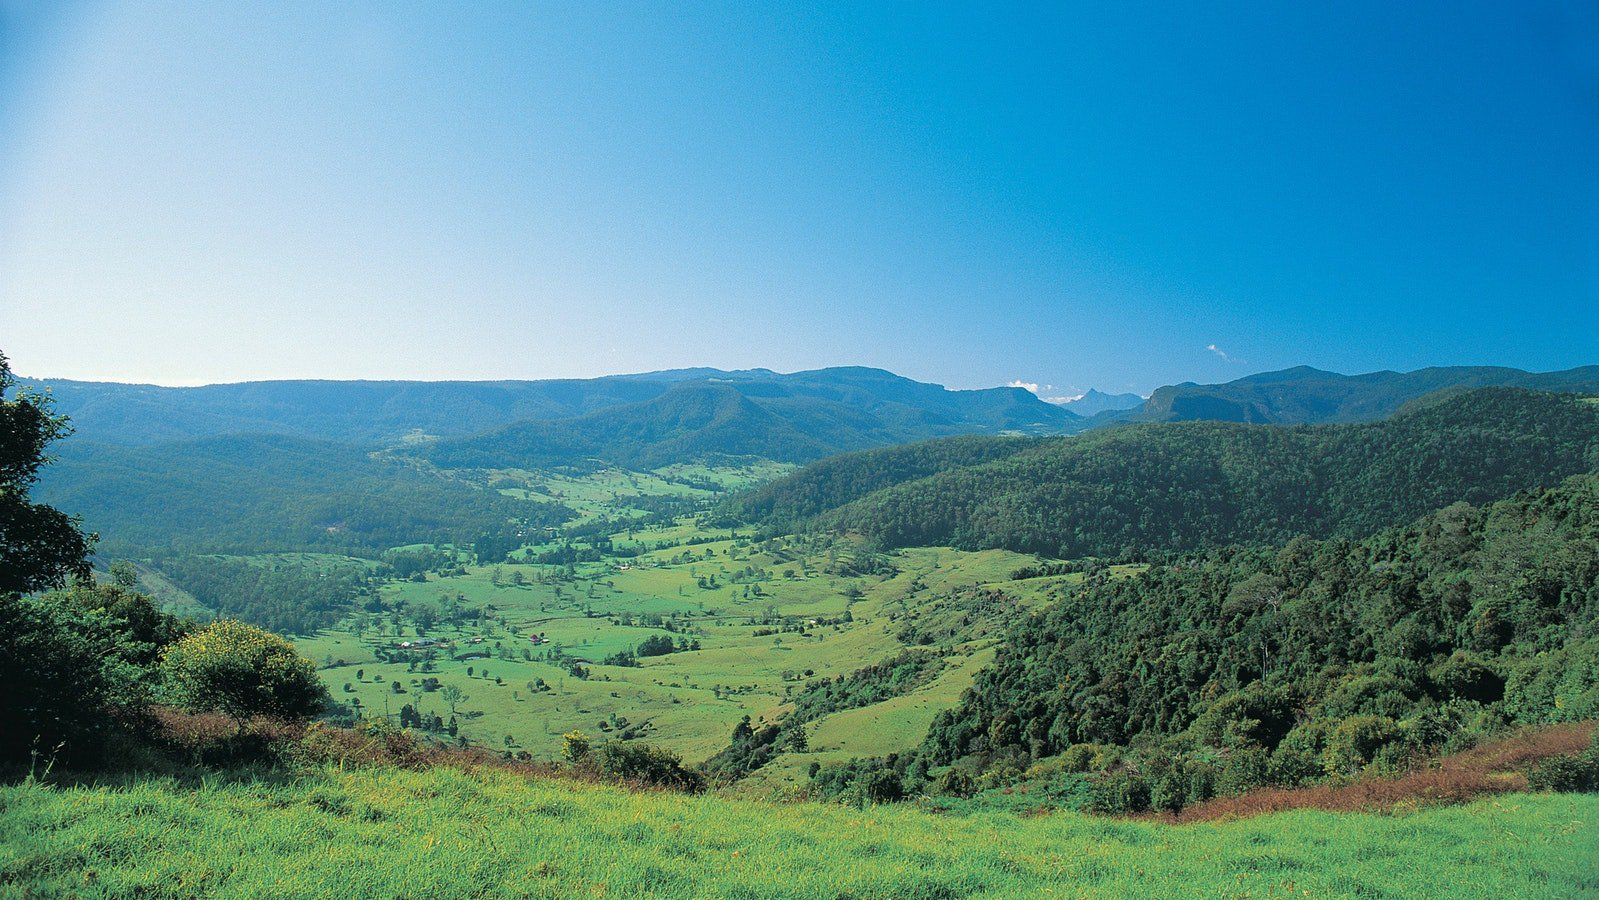 The Springbrook Plateau with Mount Warning off in the Distance. The Gold Coast Hinterland is a stunning combination of rainforest, rolling green hills, mountains and rivers.